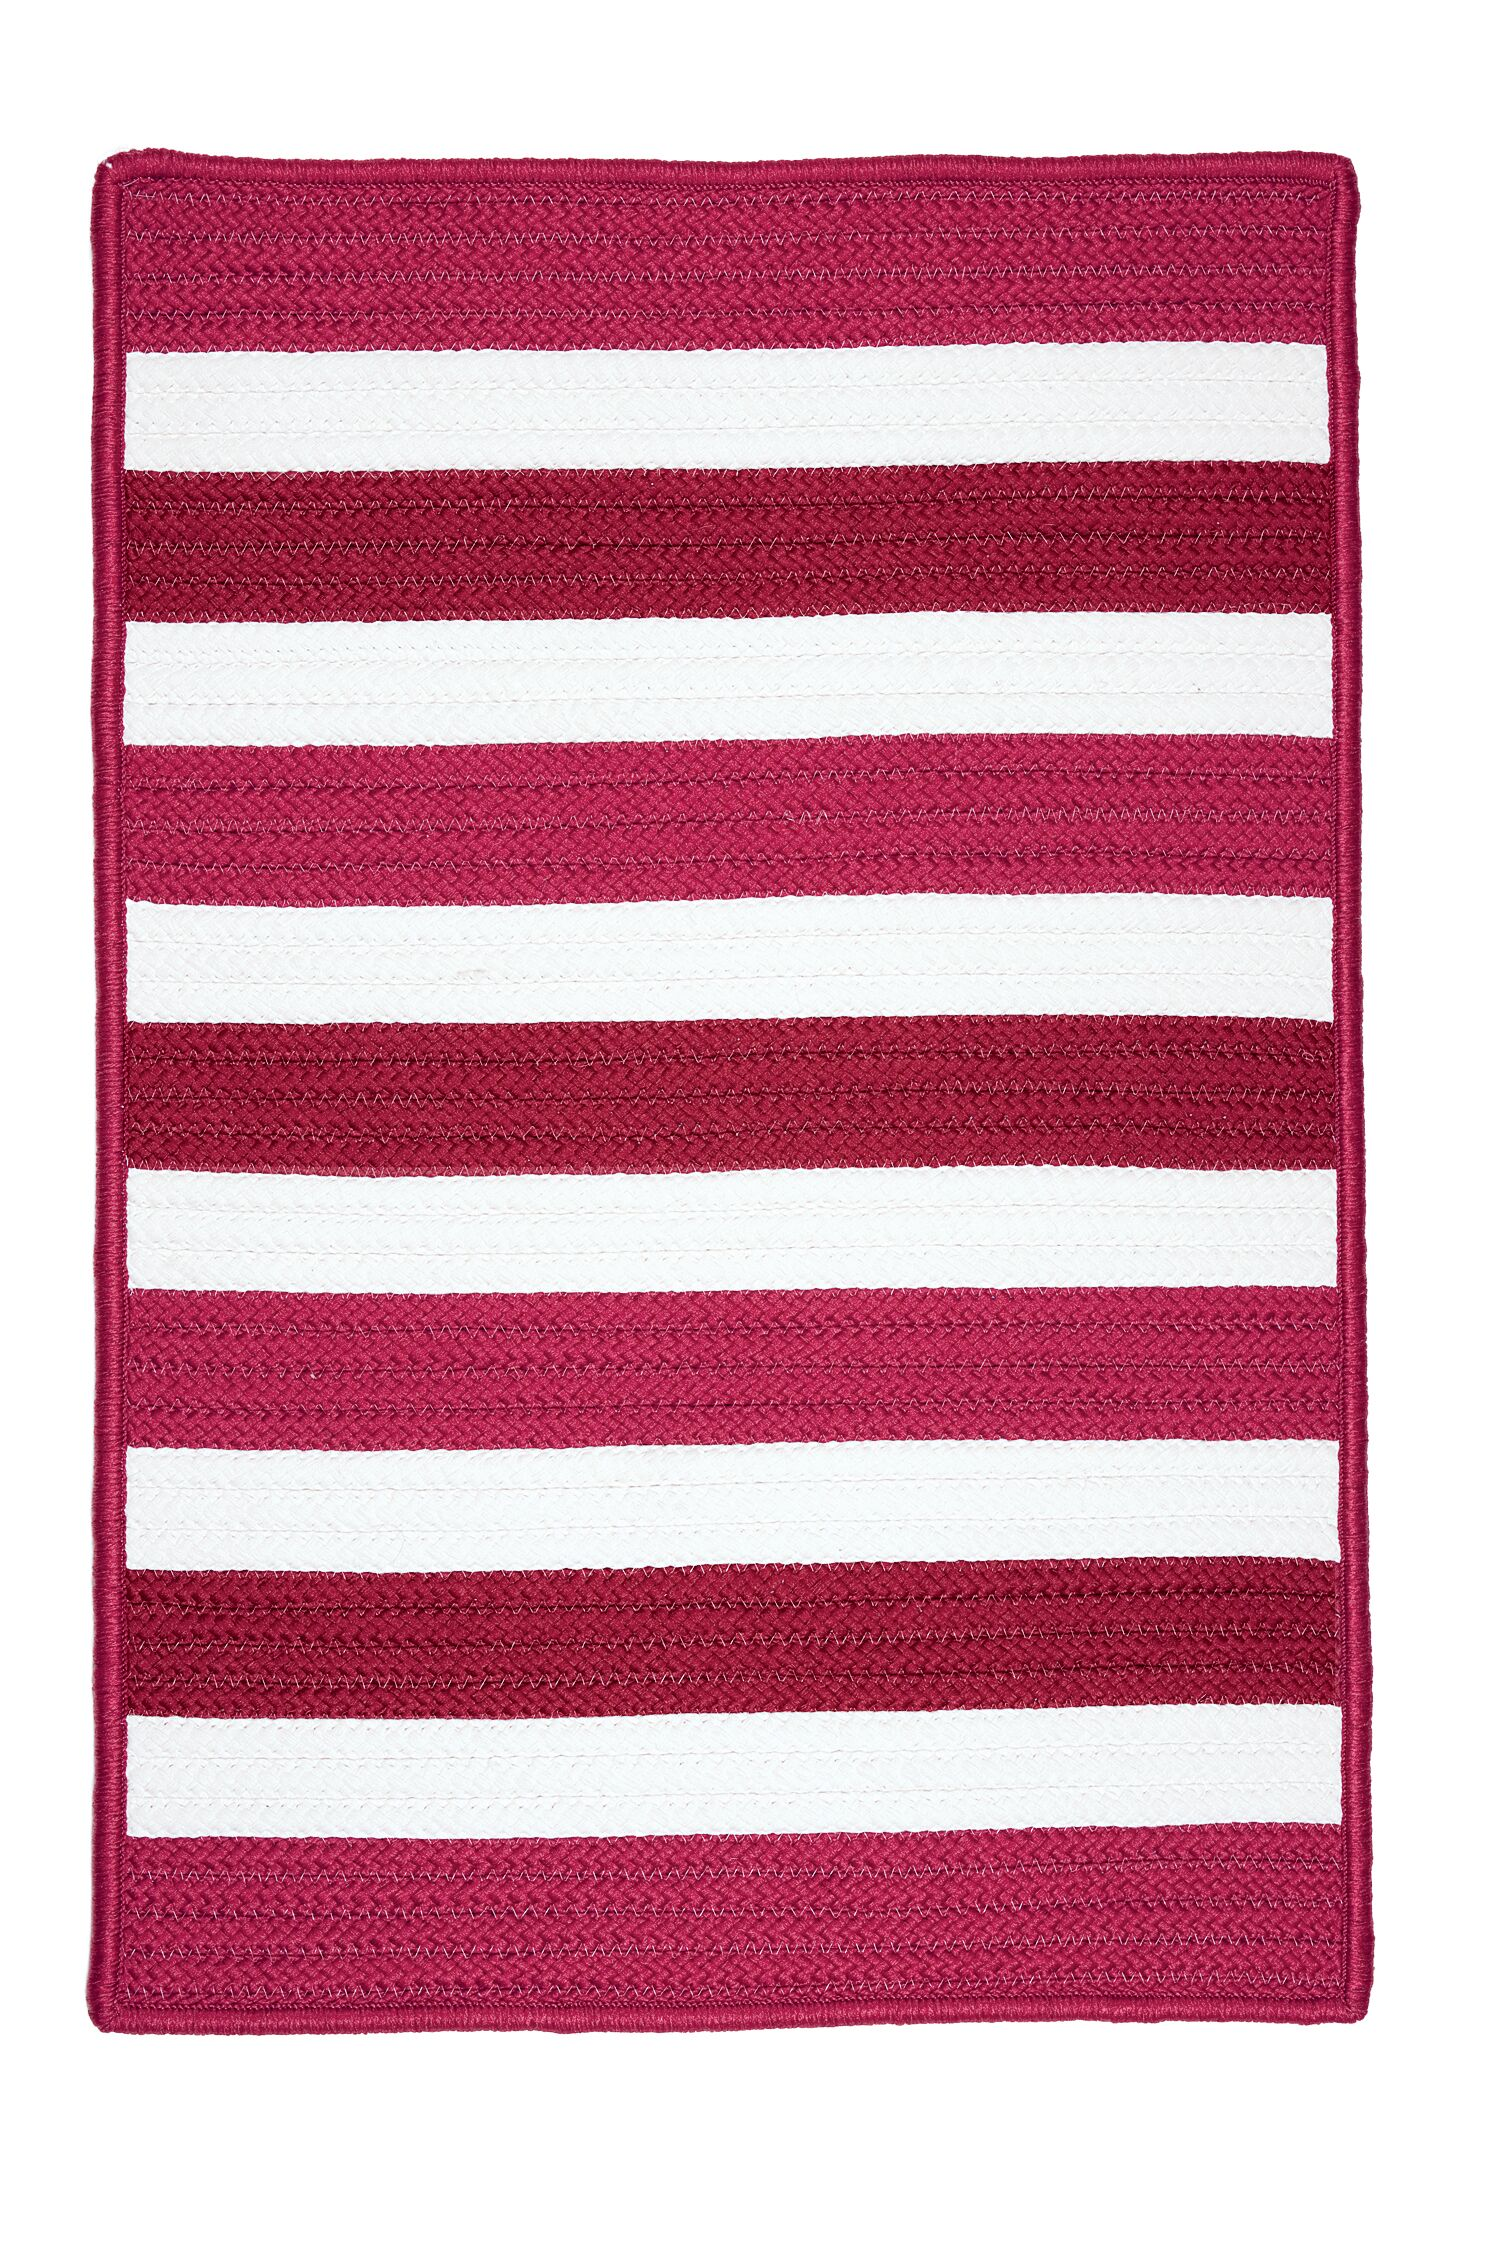 Eagle Lake Striped Indoor/Outdoor Area Rug Rug Size: Square 10'